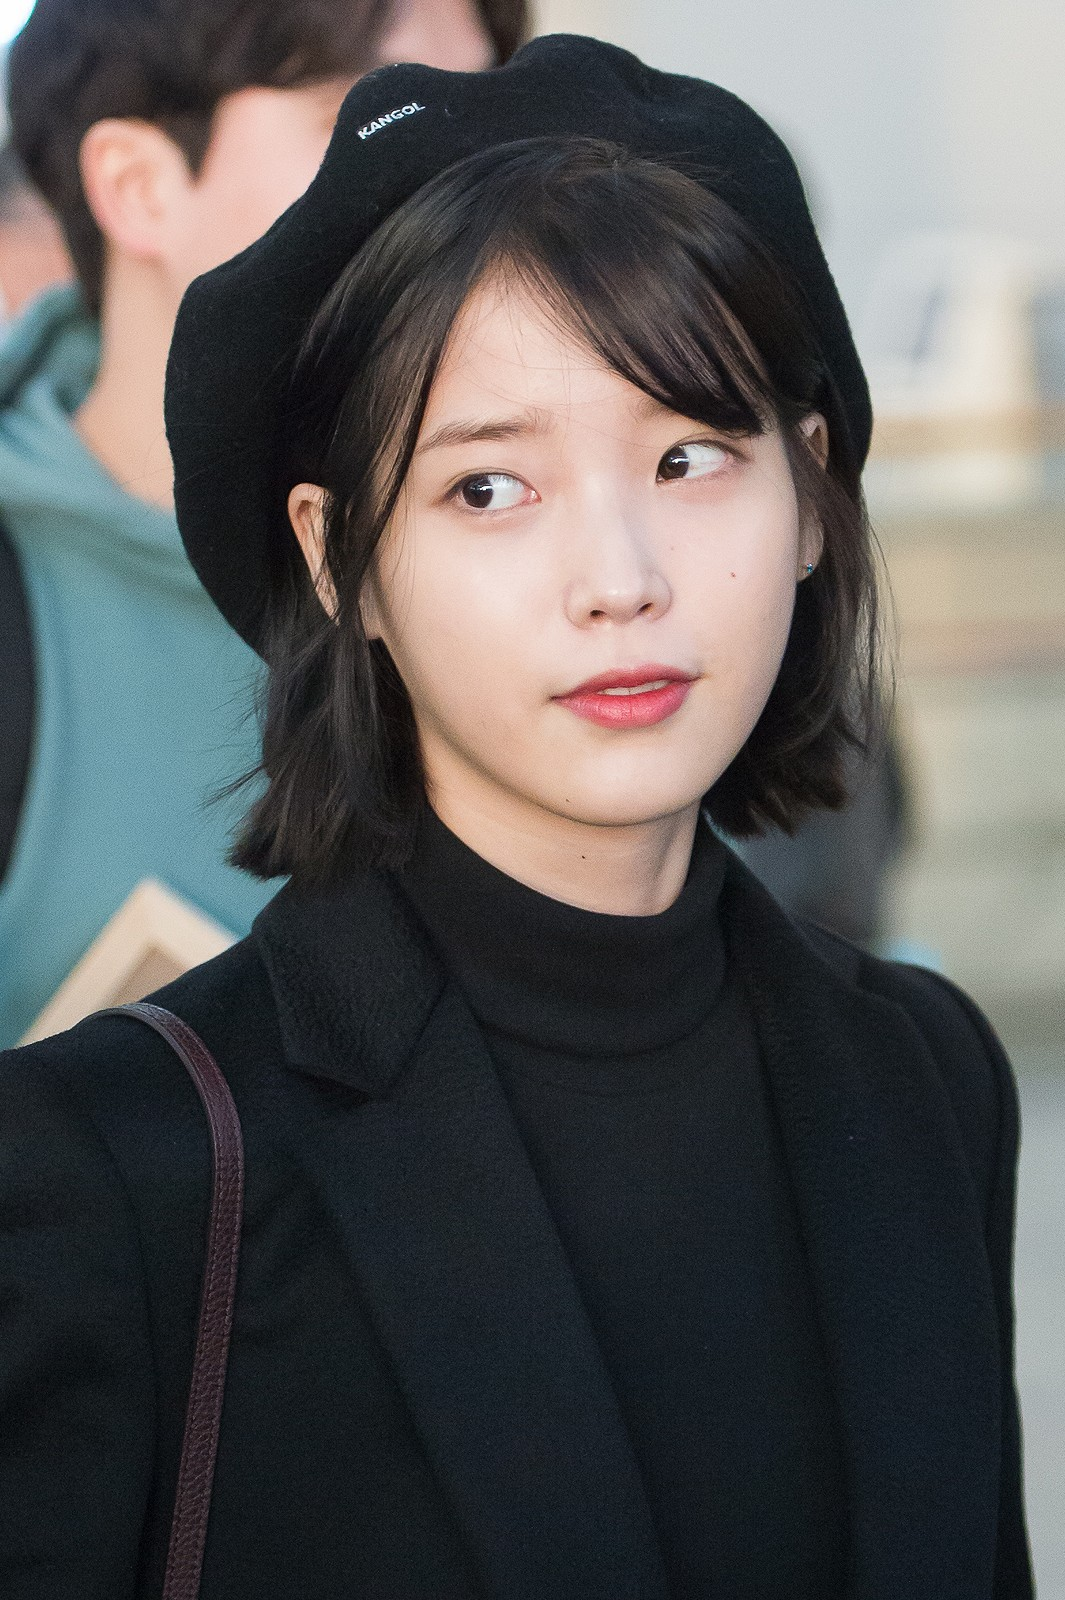 fileiu at incheon airport 6 january 2017 04jpg